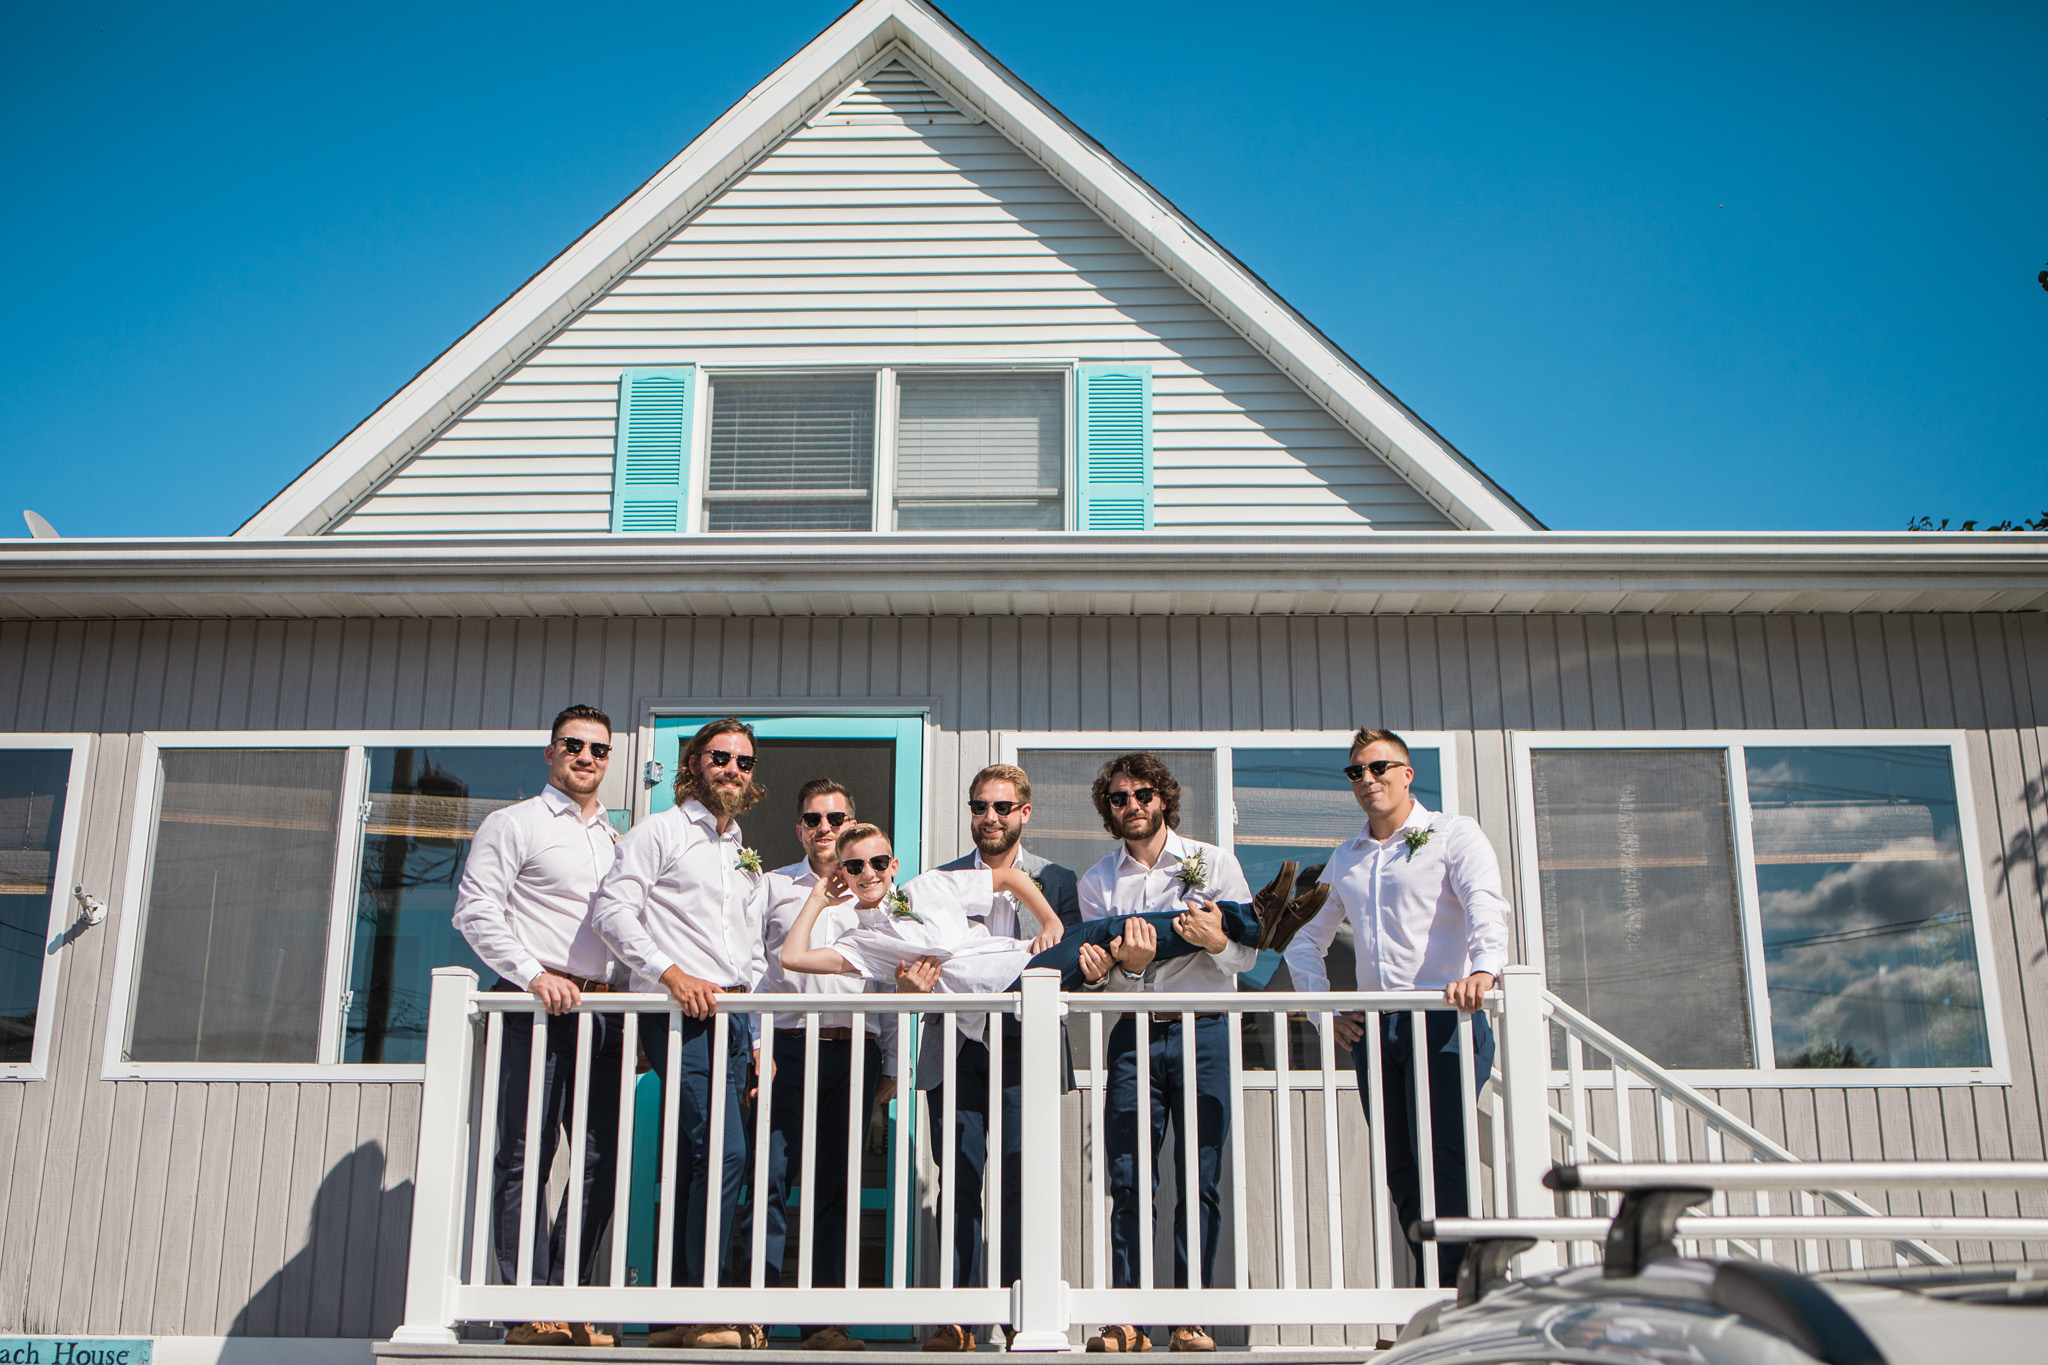 The guys' Lewes beach house was pretty cool!